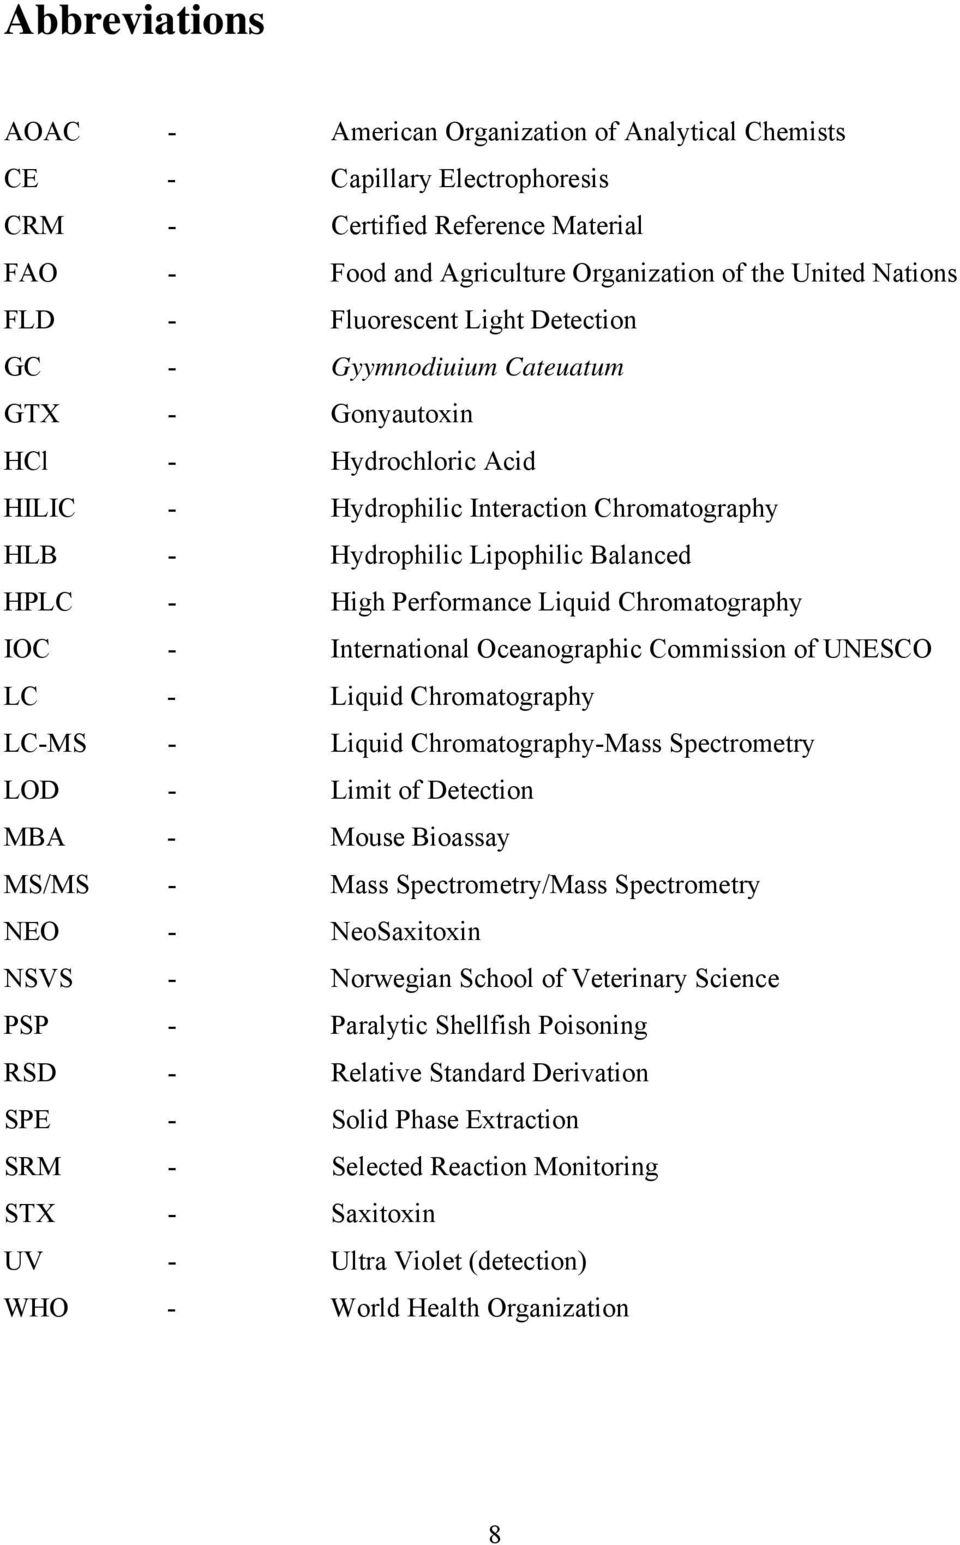 Performance Liquid Chromatography IOC - International Oceanographic Commission of UNESCO LC - Liquid Chromatography LC-MS - Liquid Chromatography-Mass Spectrometry LOD - Limit of Detection MBA -